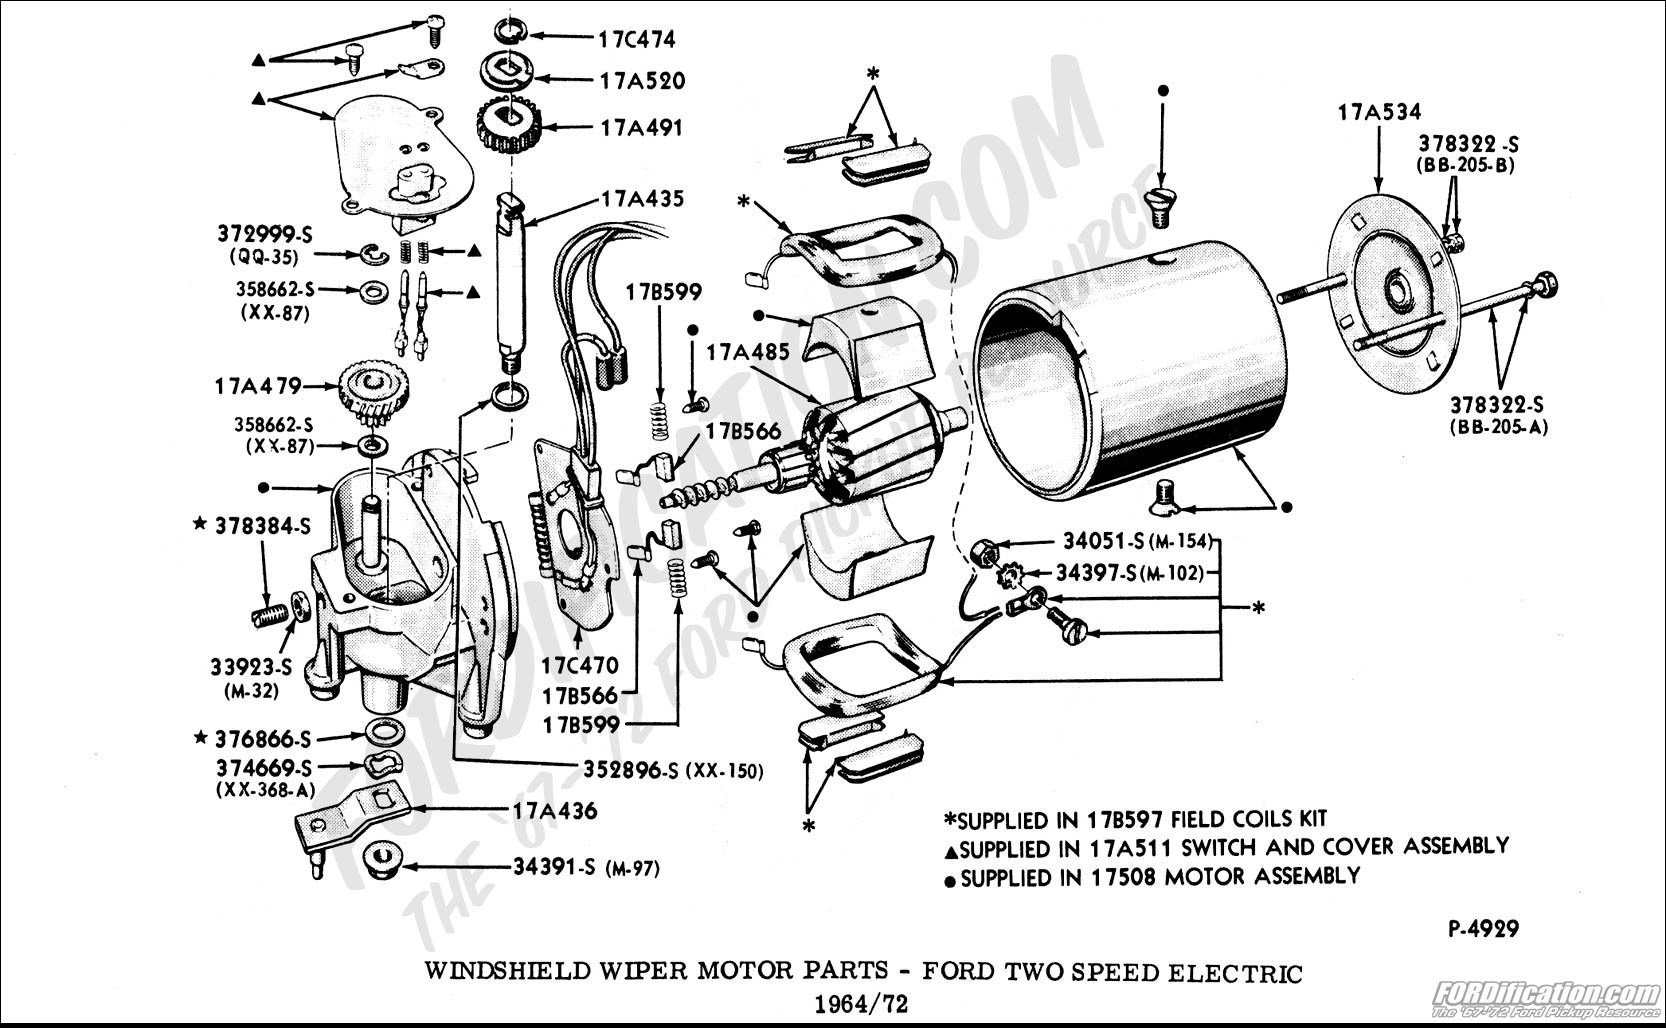 1955 FORD F250 WIRING DIAGRAM - Auto Electrical Wiring Diagram Jack Tung Switch Wiring Diagram on